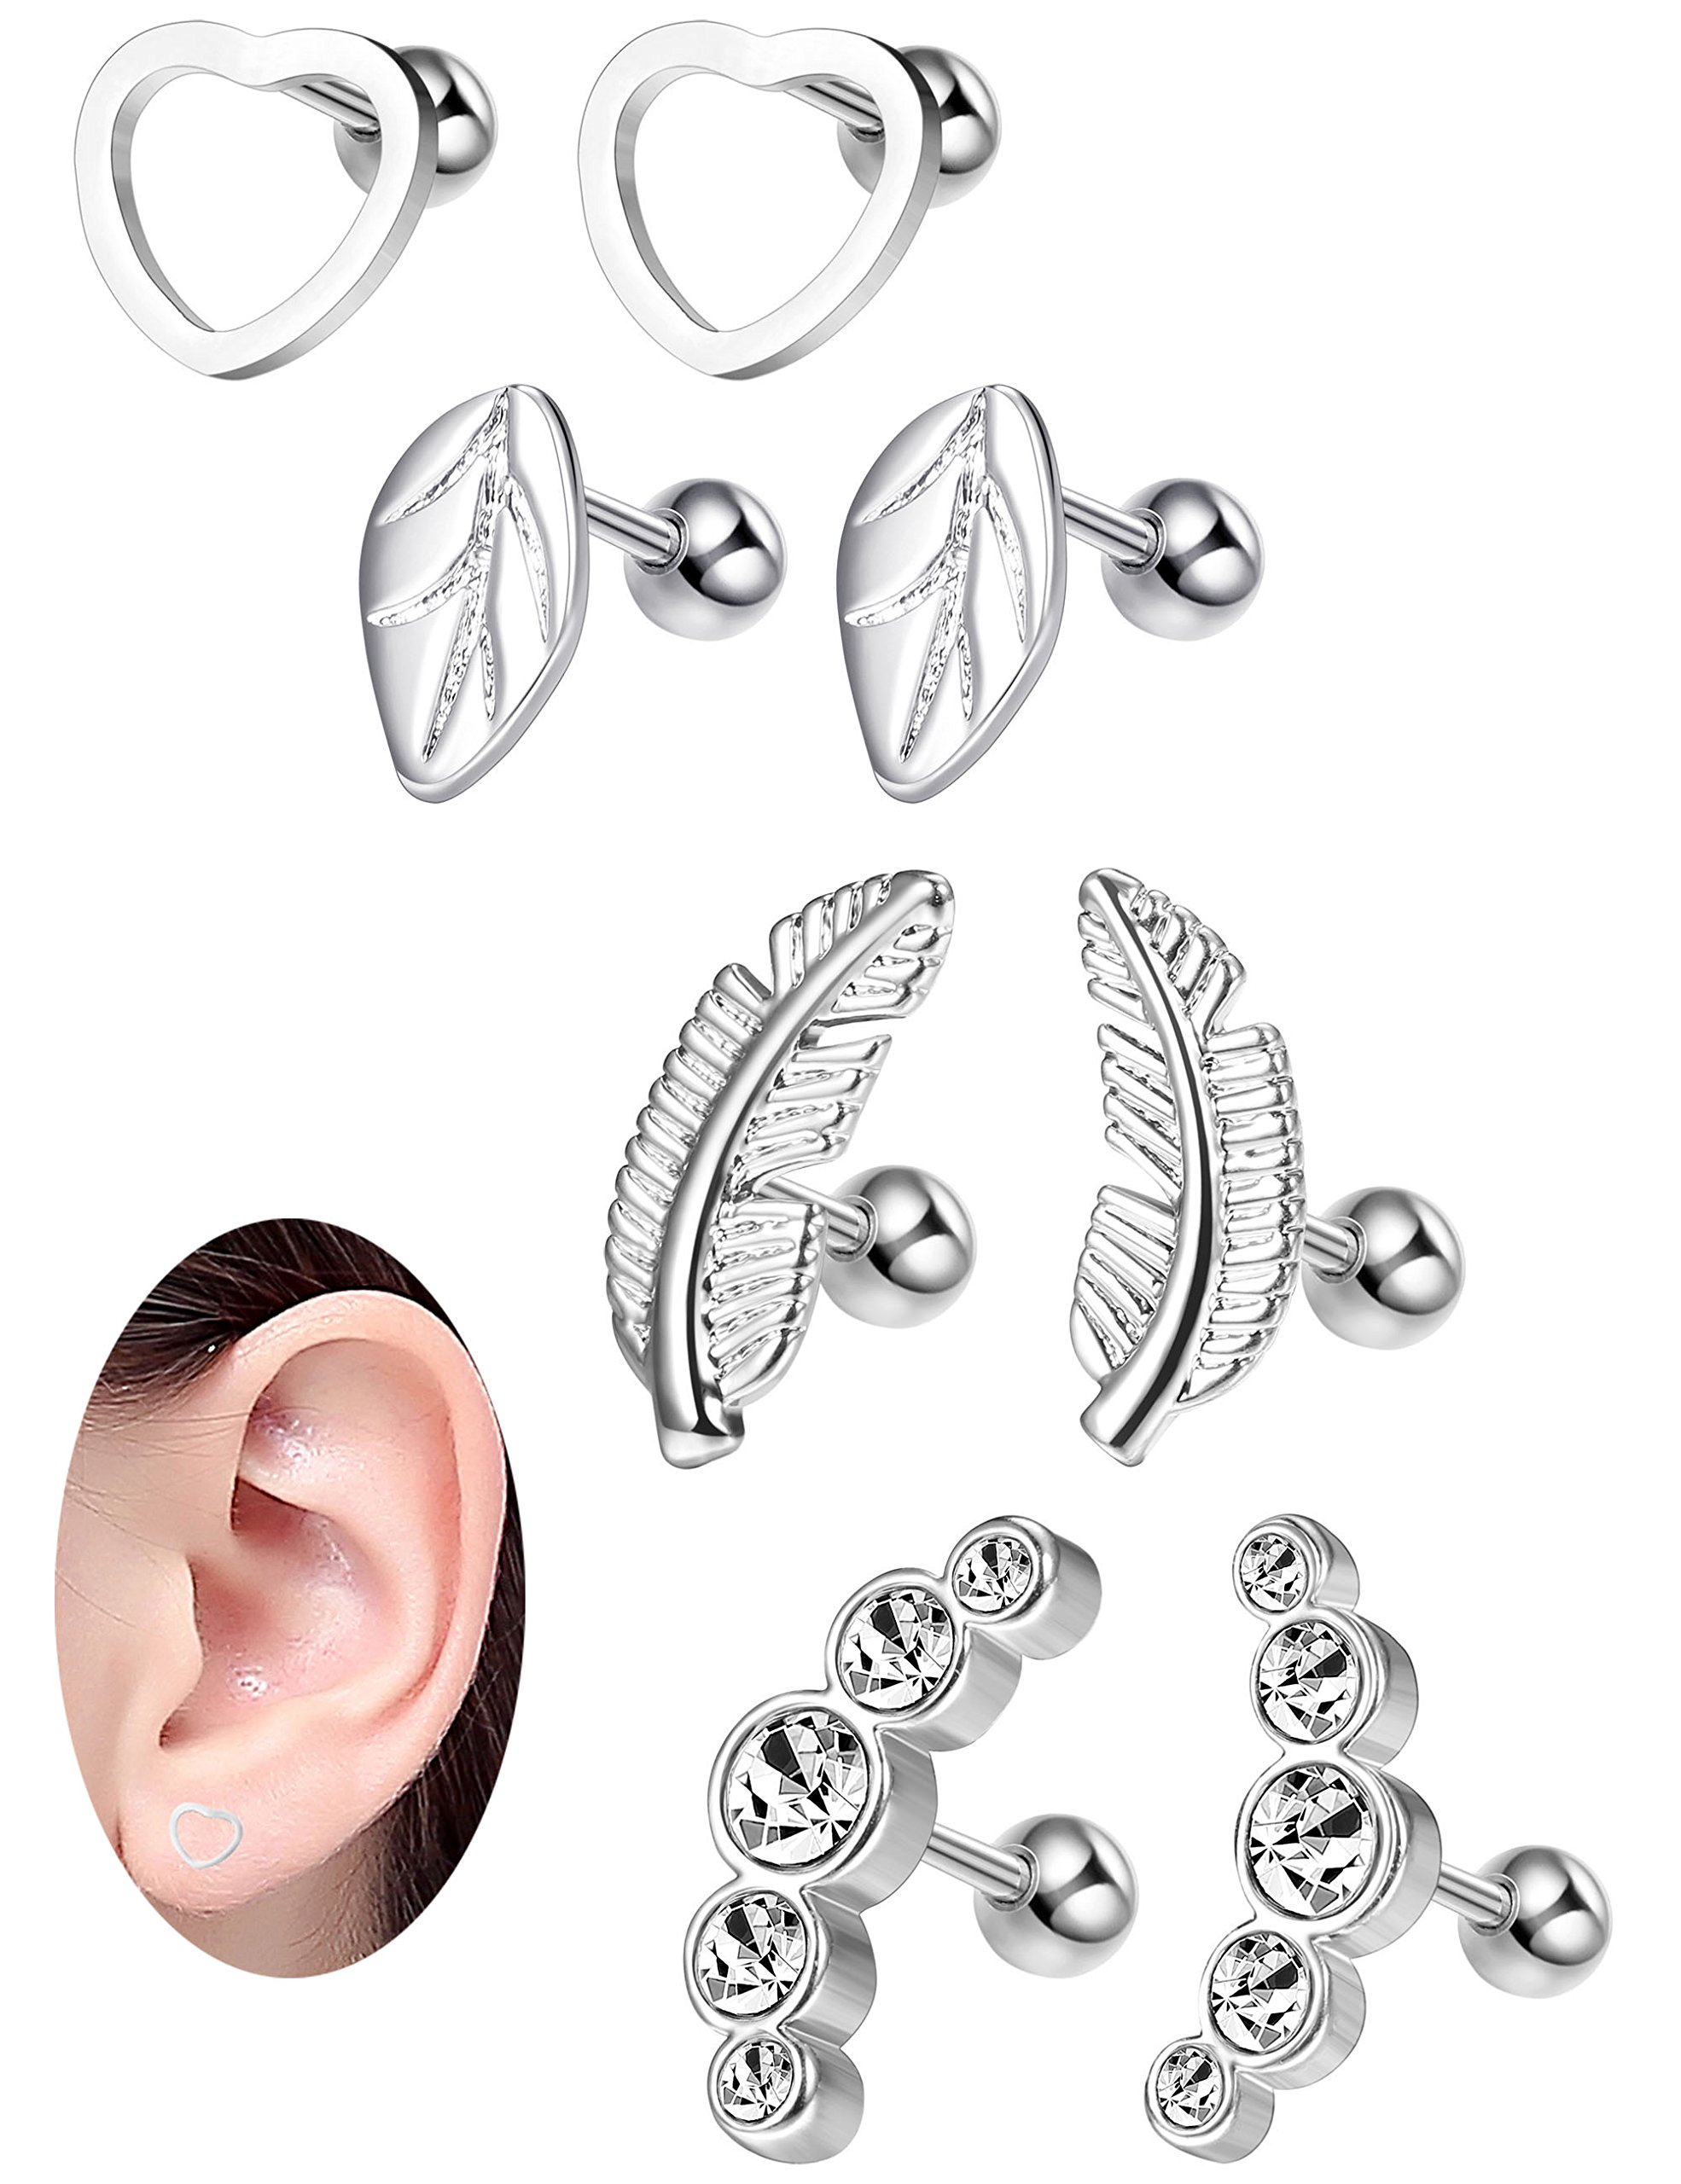 Milacolato 16G Cartilage Tragus Earrings Set for Women Girls Helix Conch Daith Piercing Jewelry 4 Pairs Silver